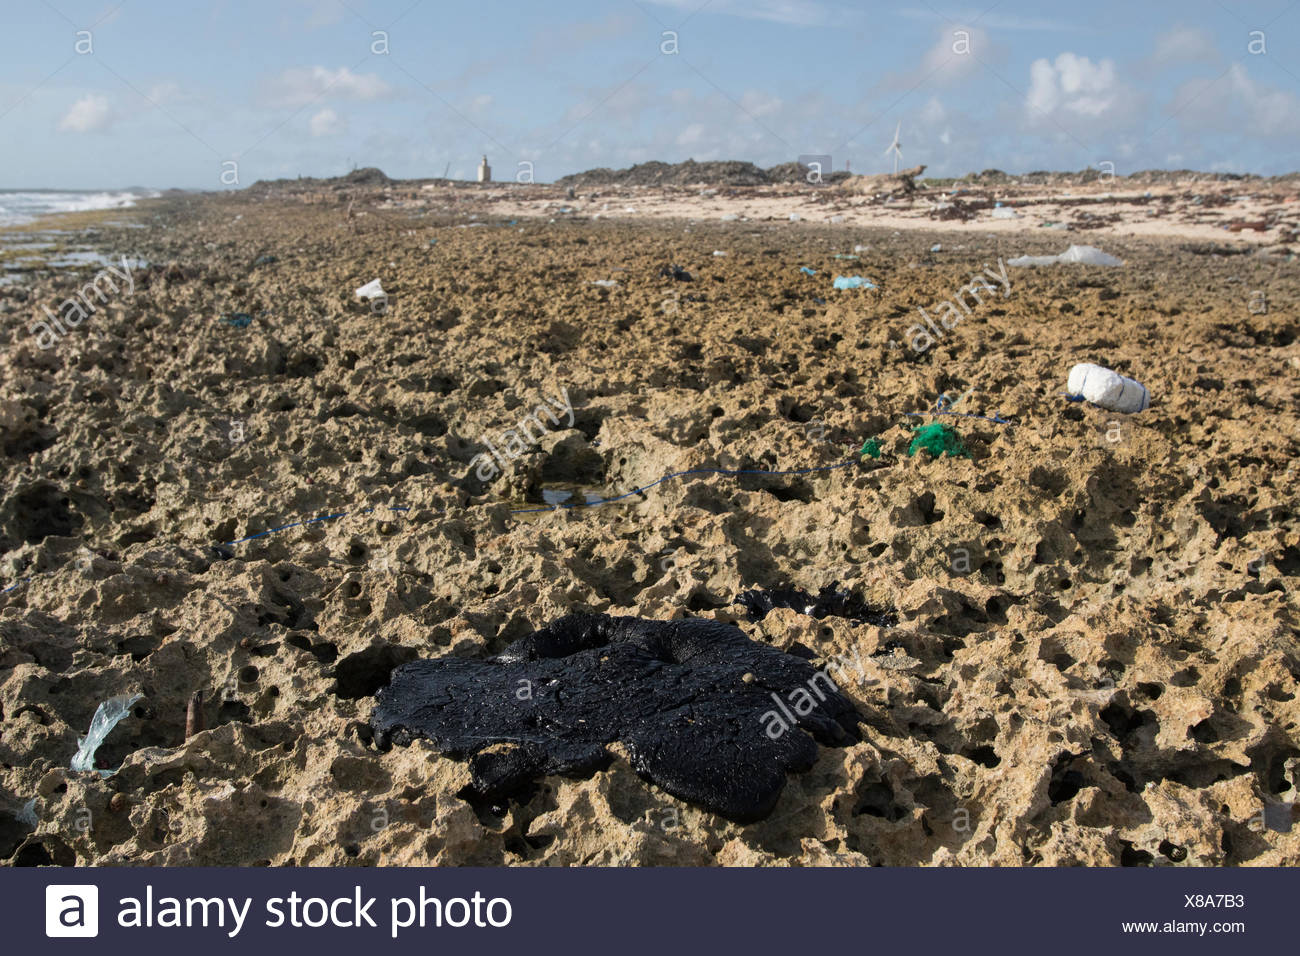 Crude oil along the east coast of Bonaire after a nearby oil spill in Trinidad. - Stock Image